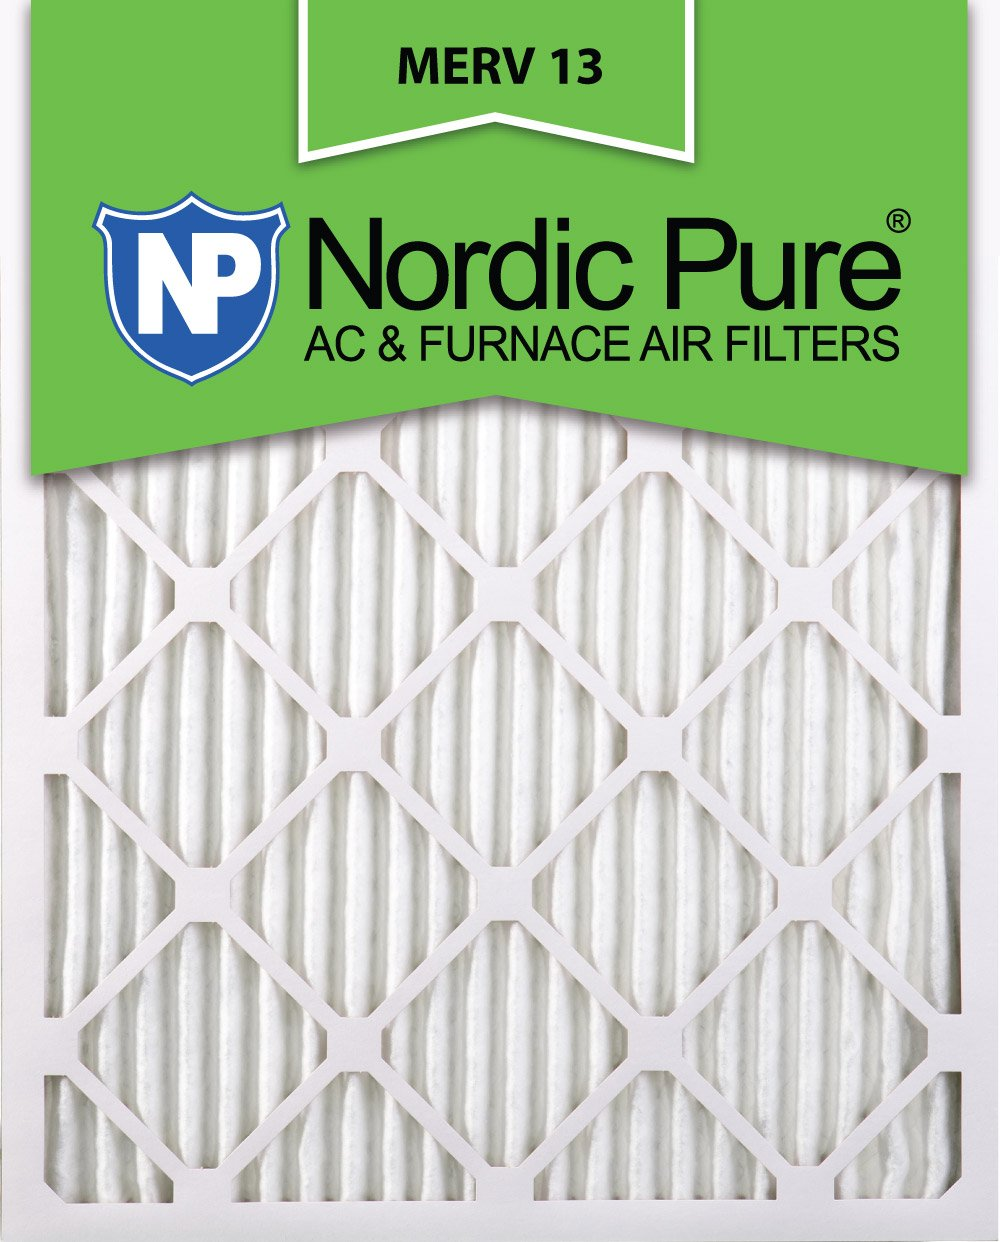 16x25x2 MERV 13 AC Furnace Filter Qty 12 by Nordic Pure